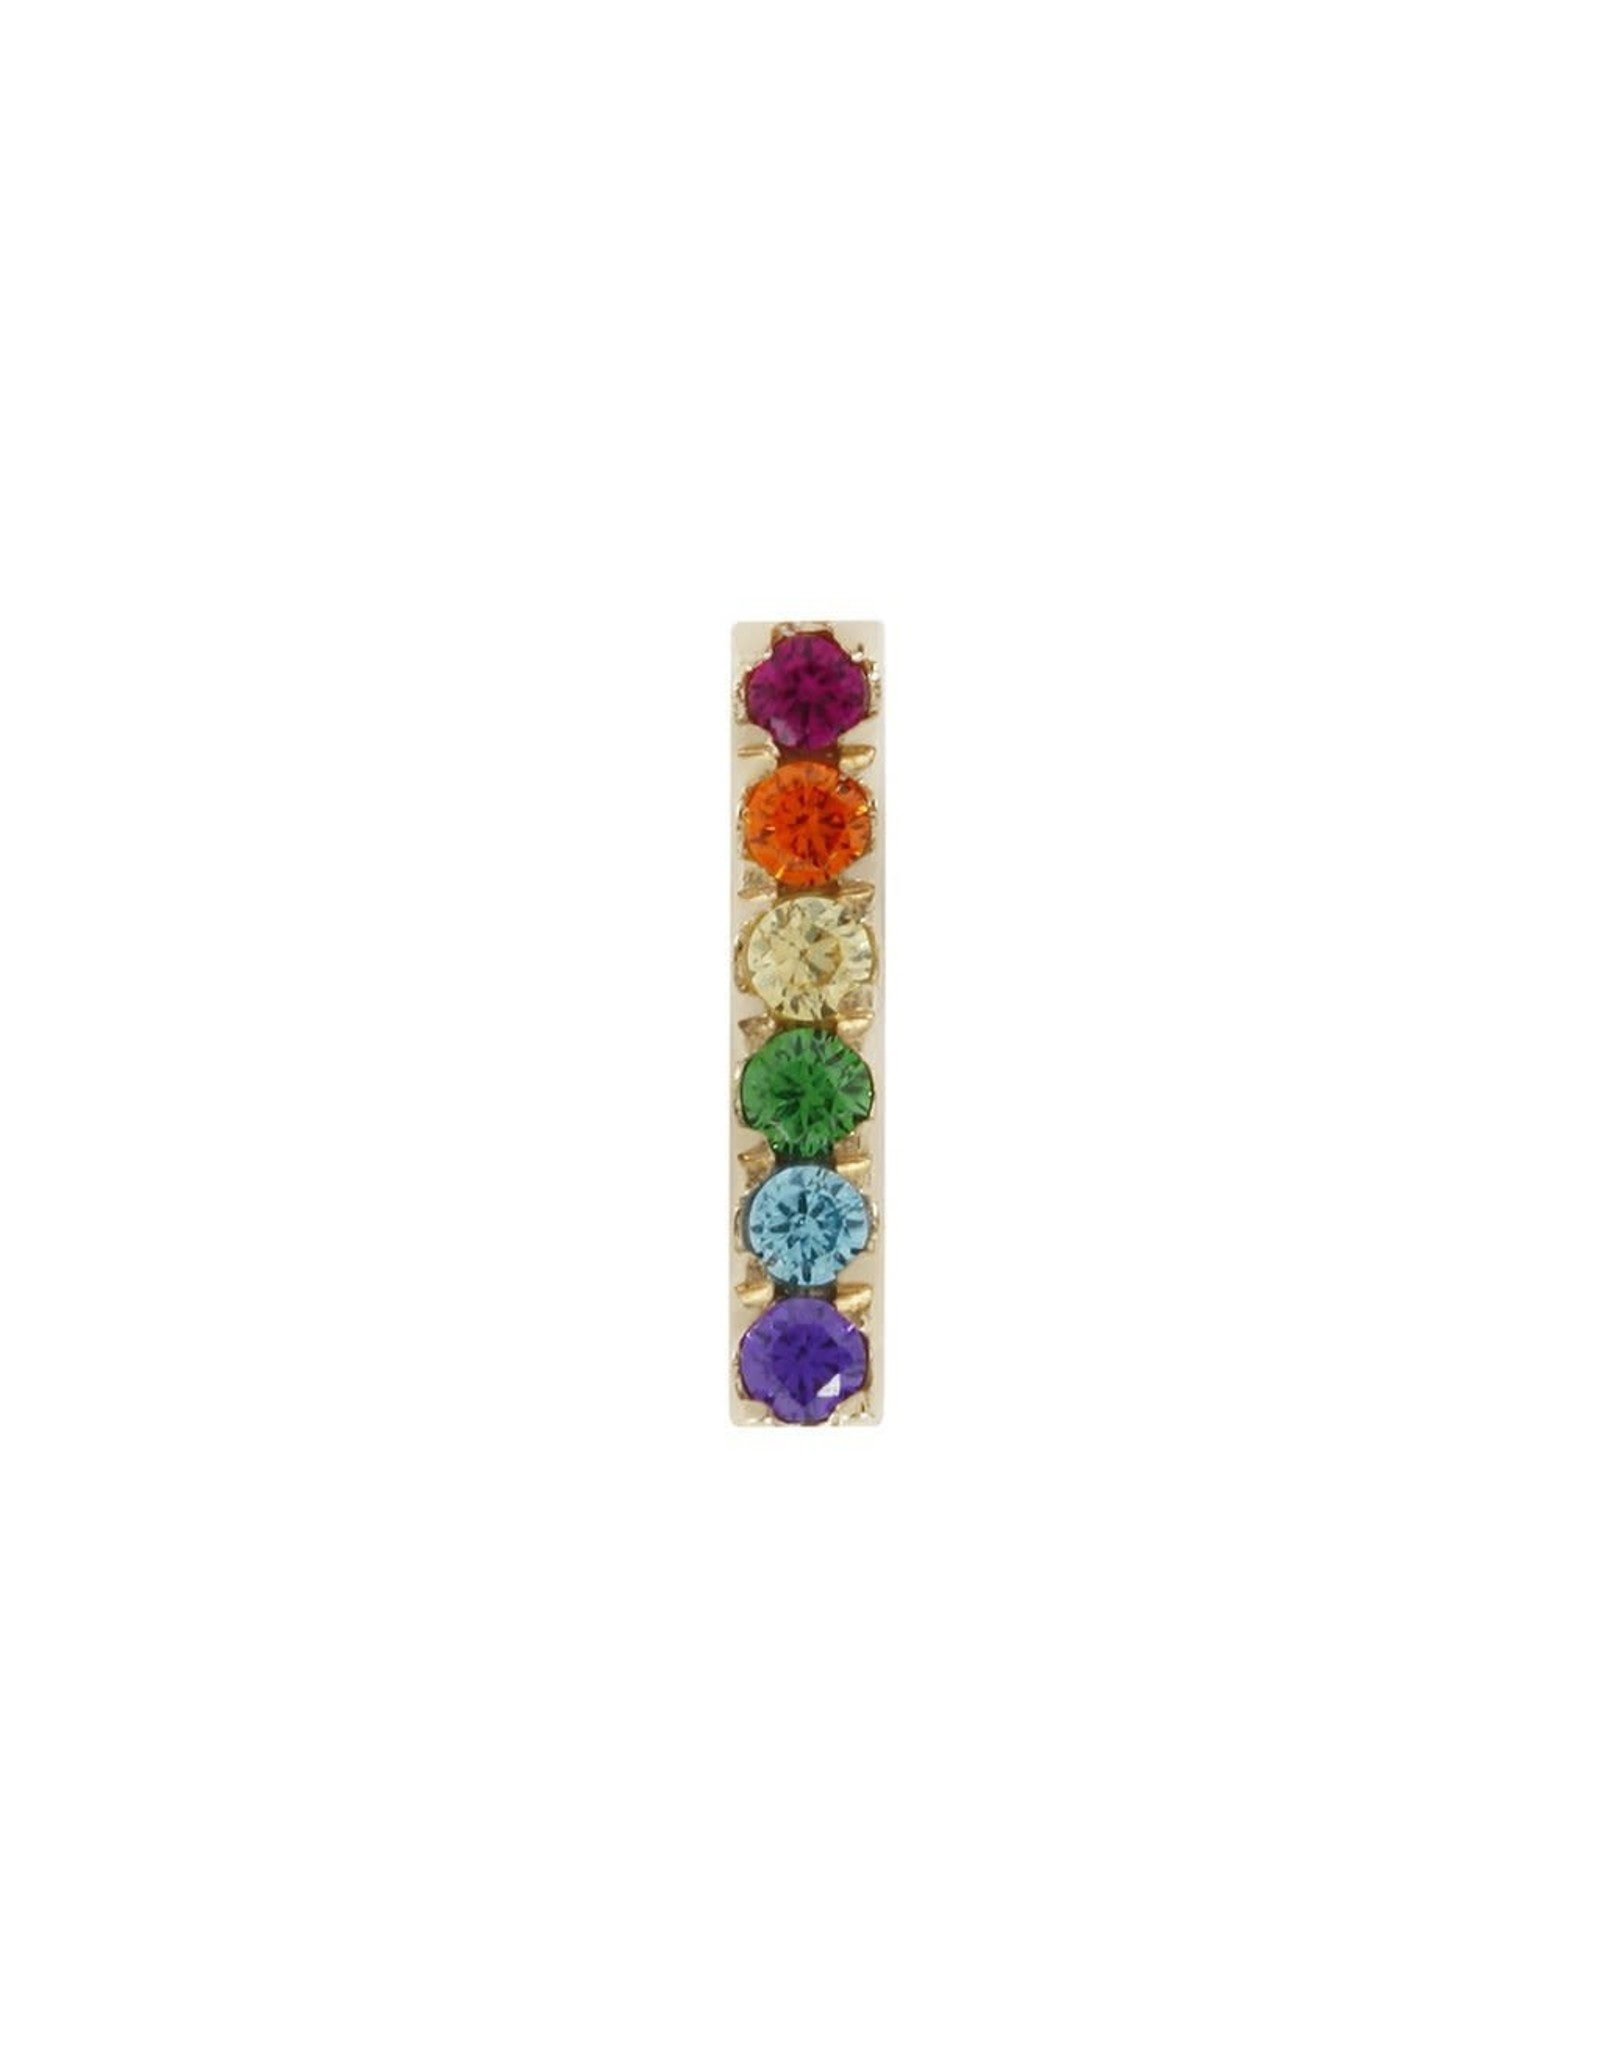 """Buddha Jewelry Organics Buddha Jewelry Organics solid 14 karat gold """"Rainbow Rowe """" press fit end with colored CZs"""